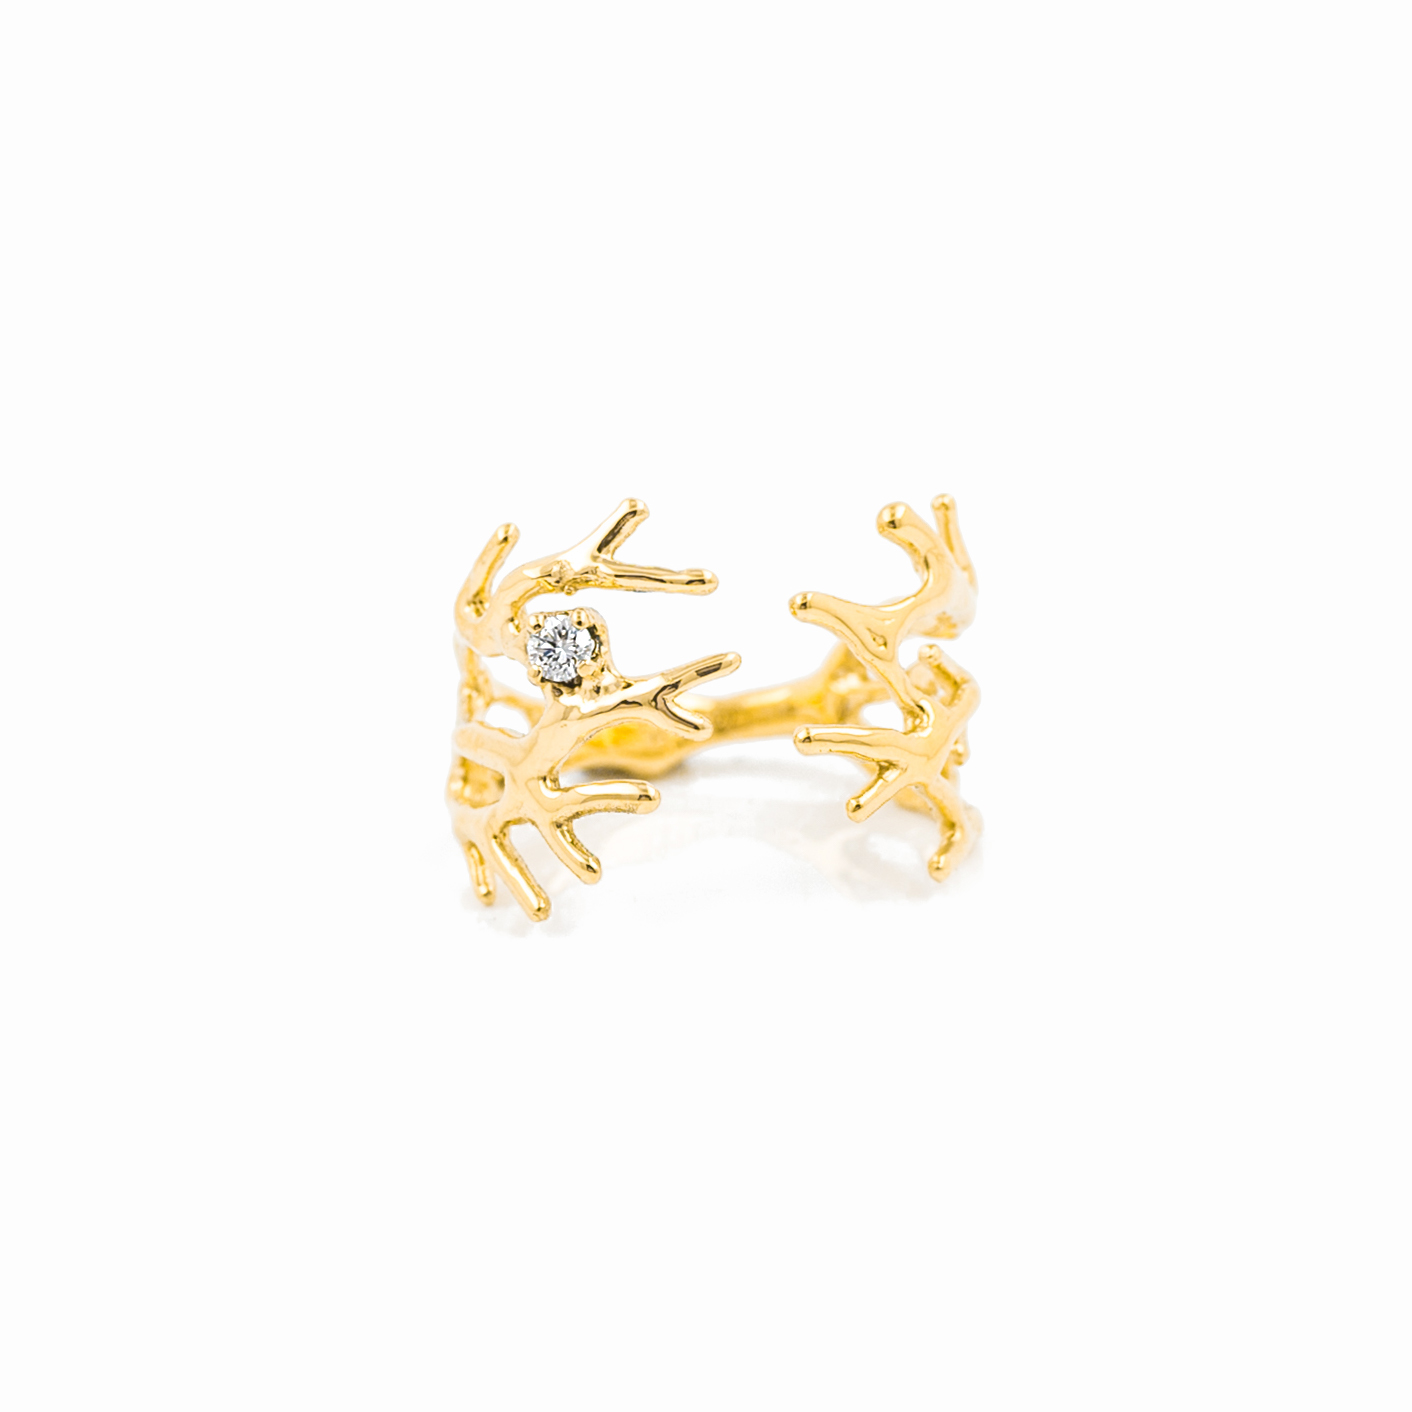 Dendrite Ring : 18ct yellow gold, brilliant white diamond